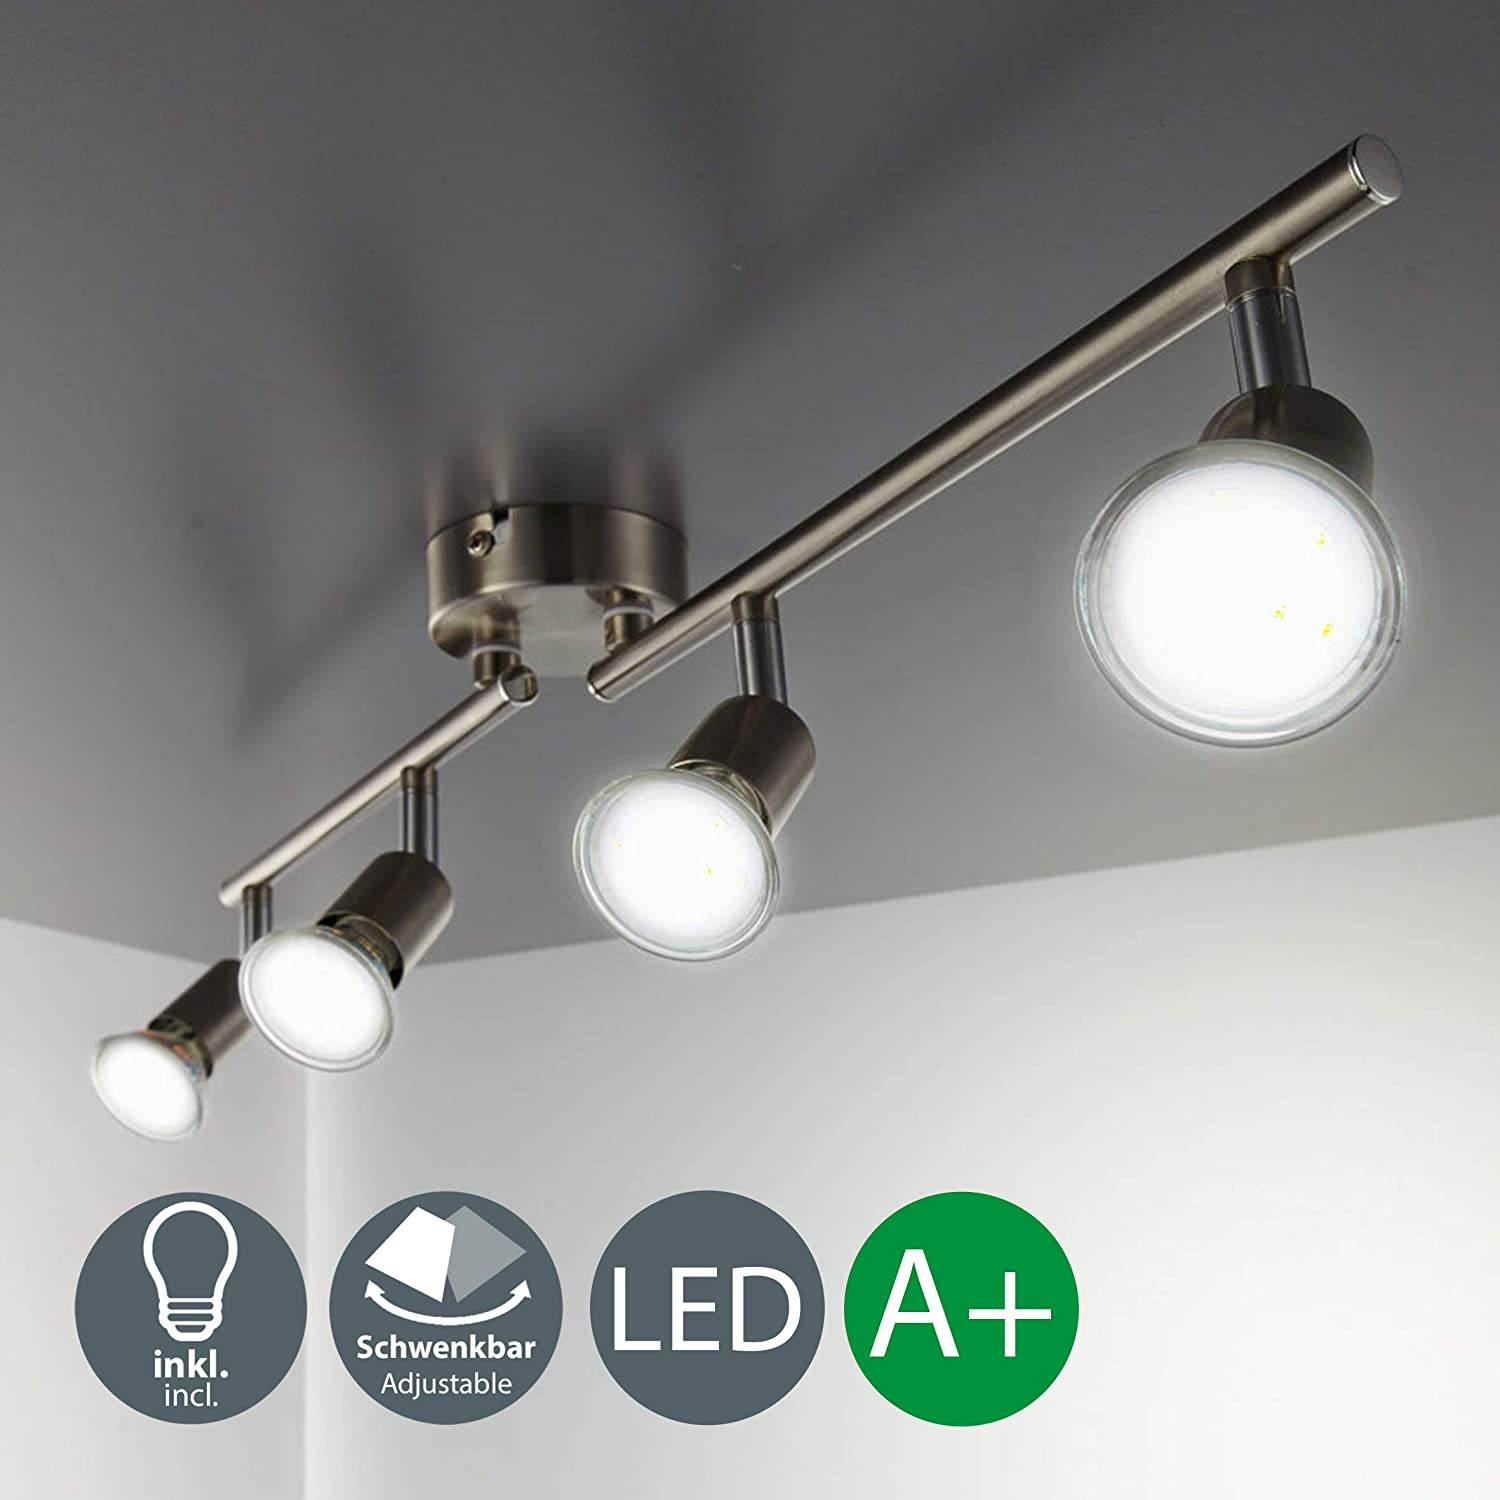 Lights & Lighting Hot Sale Gu10 Track Light Home Kitchen Showroom Store Shop Gu 10 Led Surface Ceiling Wall Spot Light Fixture 2 Spots Rail Light Track Lighting